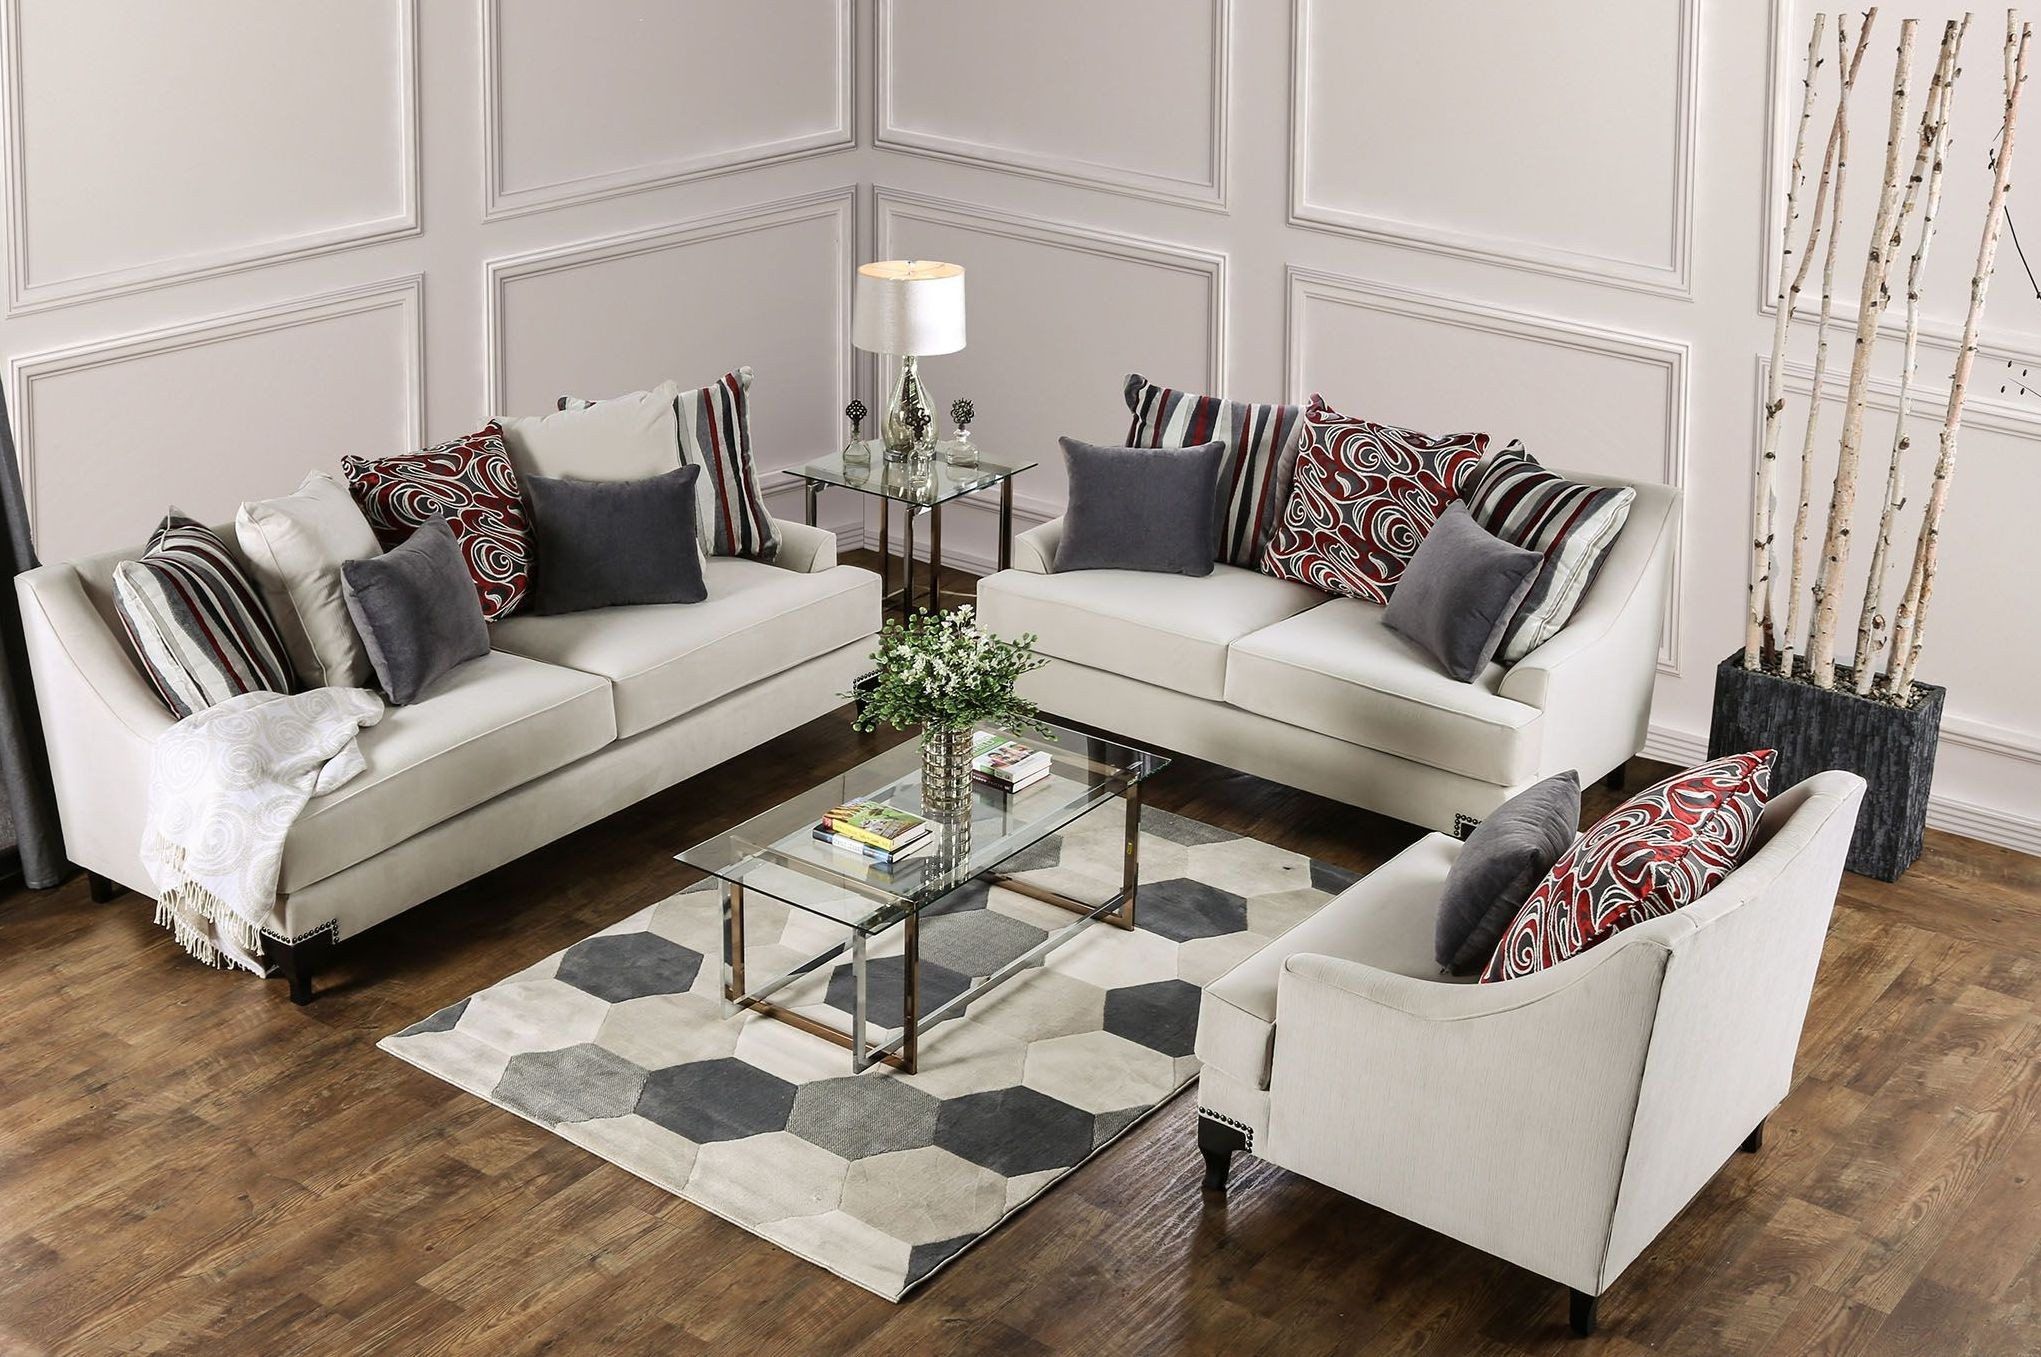 Furniture Of America Viscontti Ivory Upholstered Living Room Set regarding Upholstered Living Room Sets